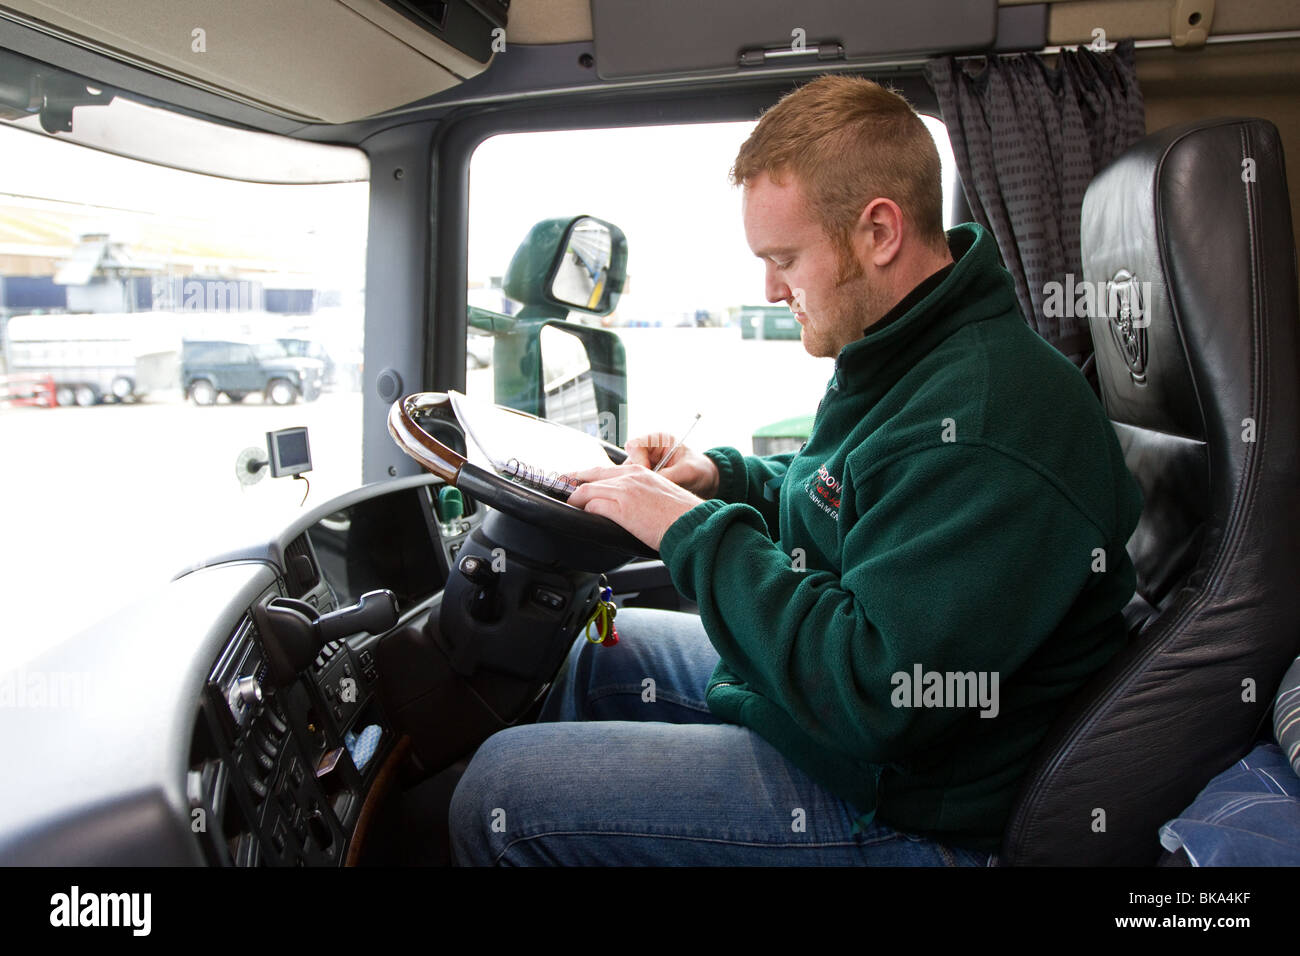 e75e3a440b A Lorry driver changing a tachograph card in his cab - Stock Image